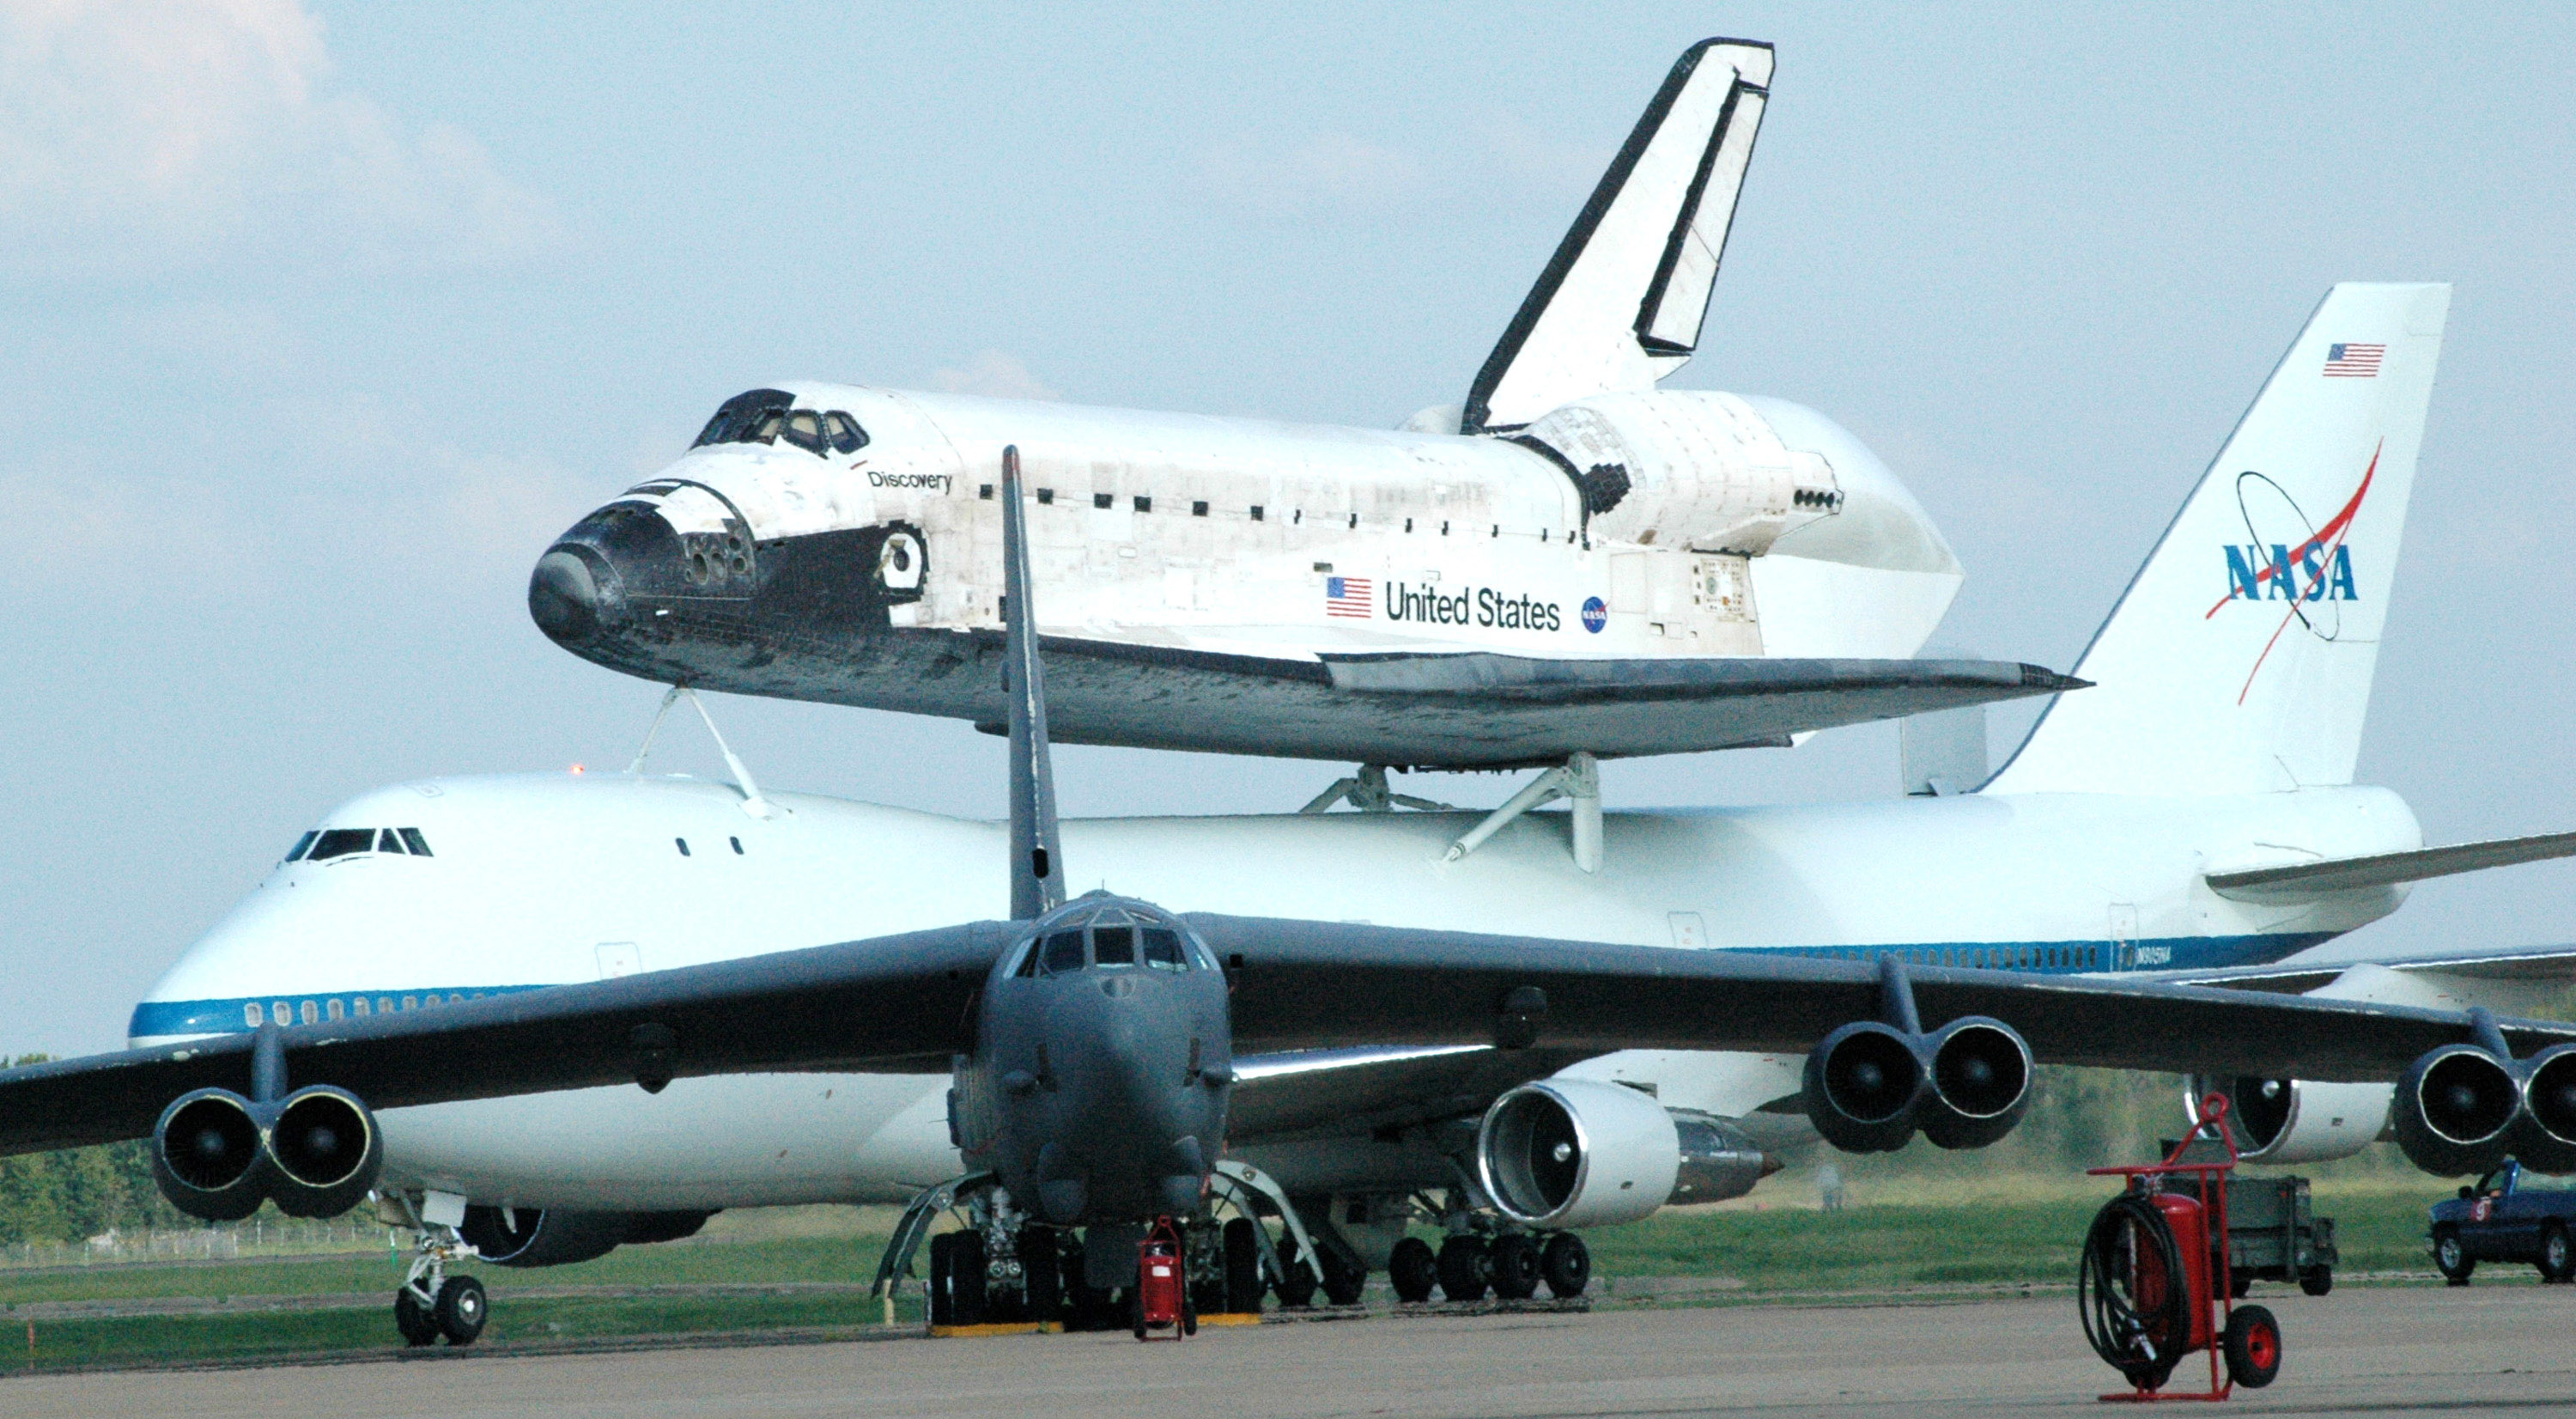 space shuttle usaf - photo #6